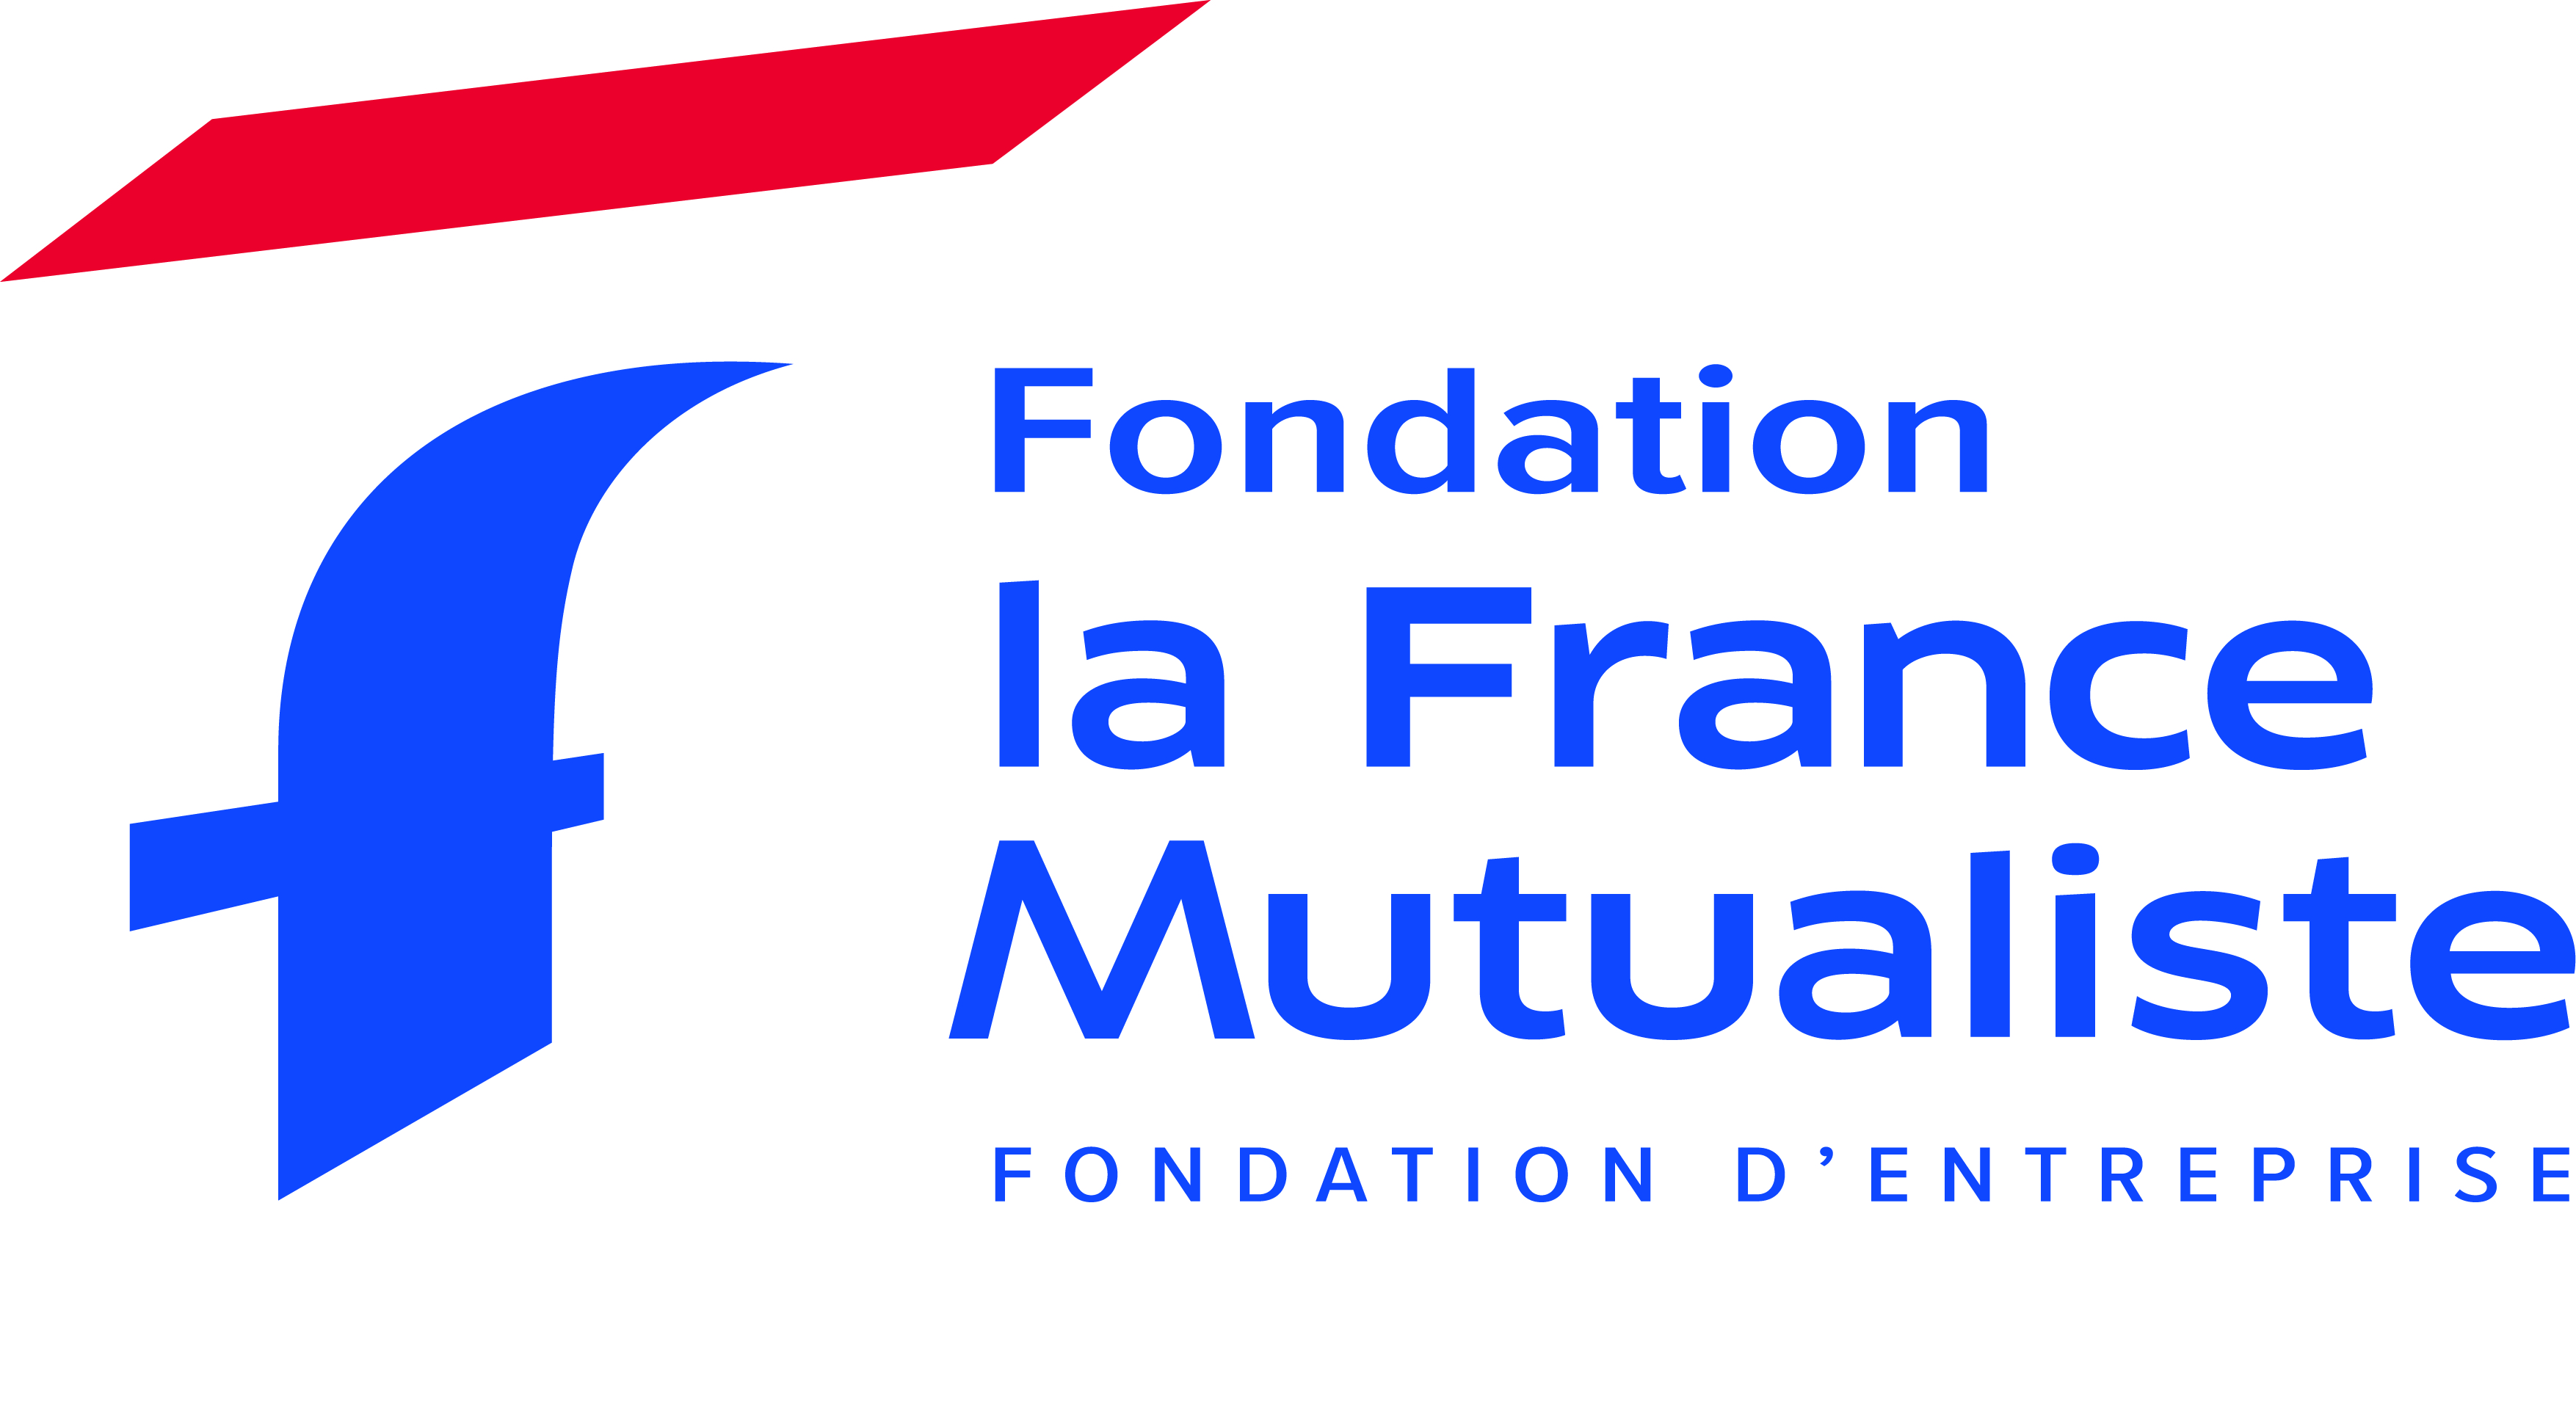 fondation Mutualiste